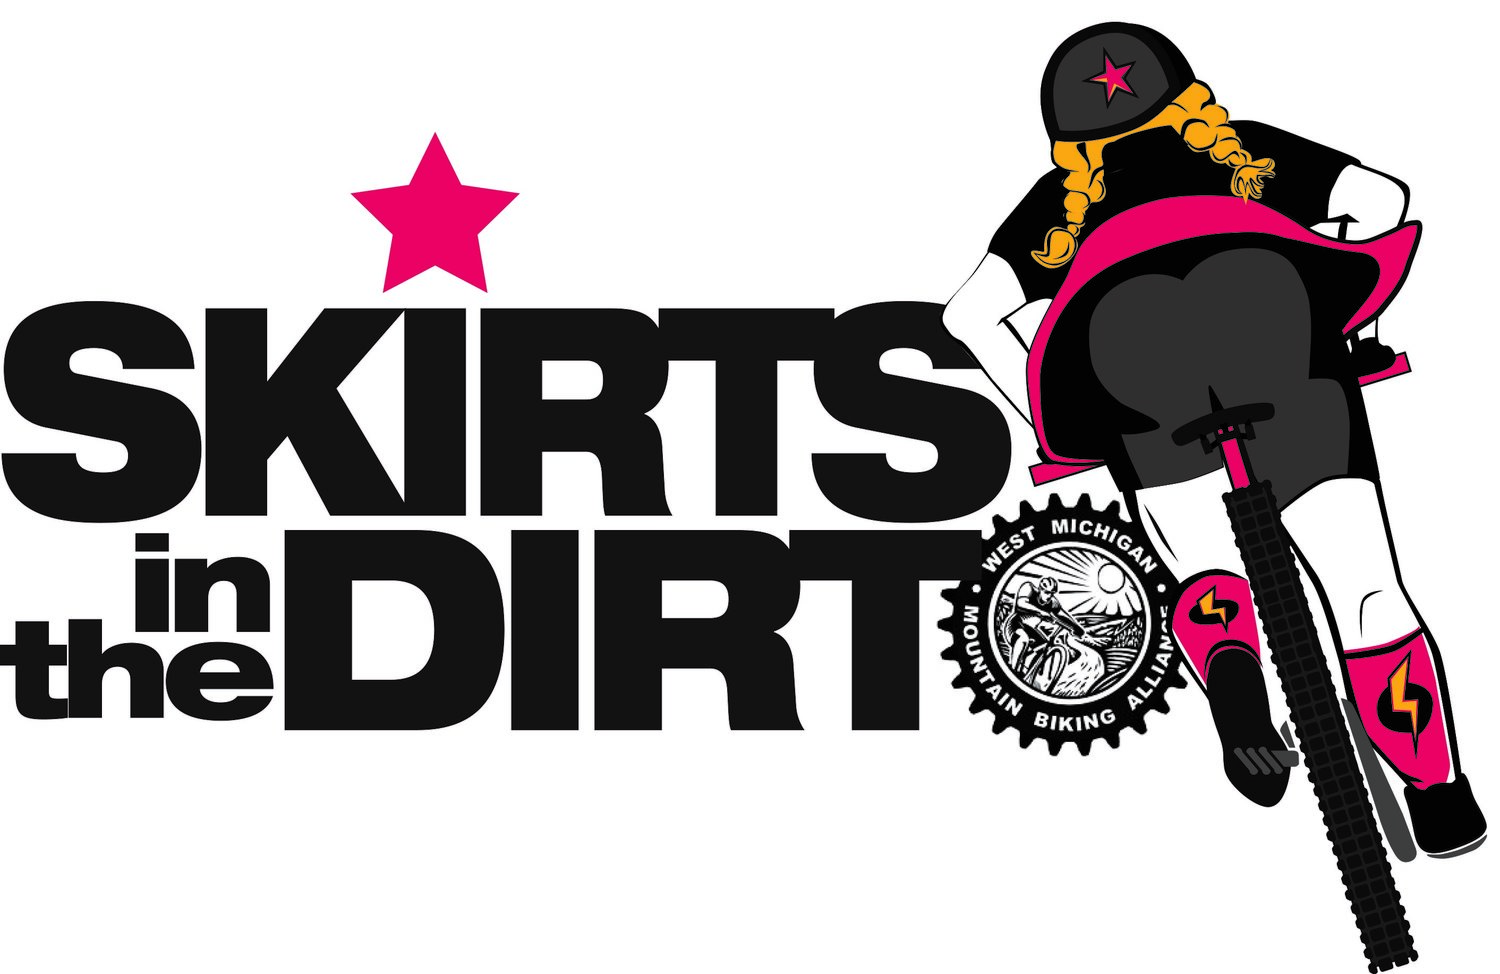 Skirts in the Dirt